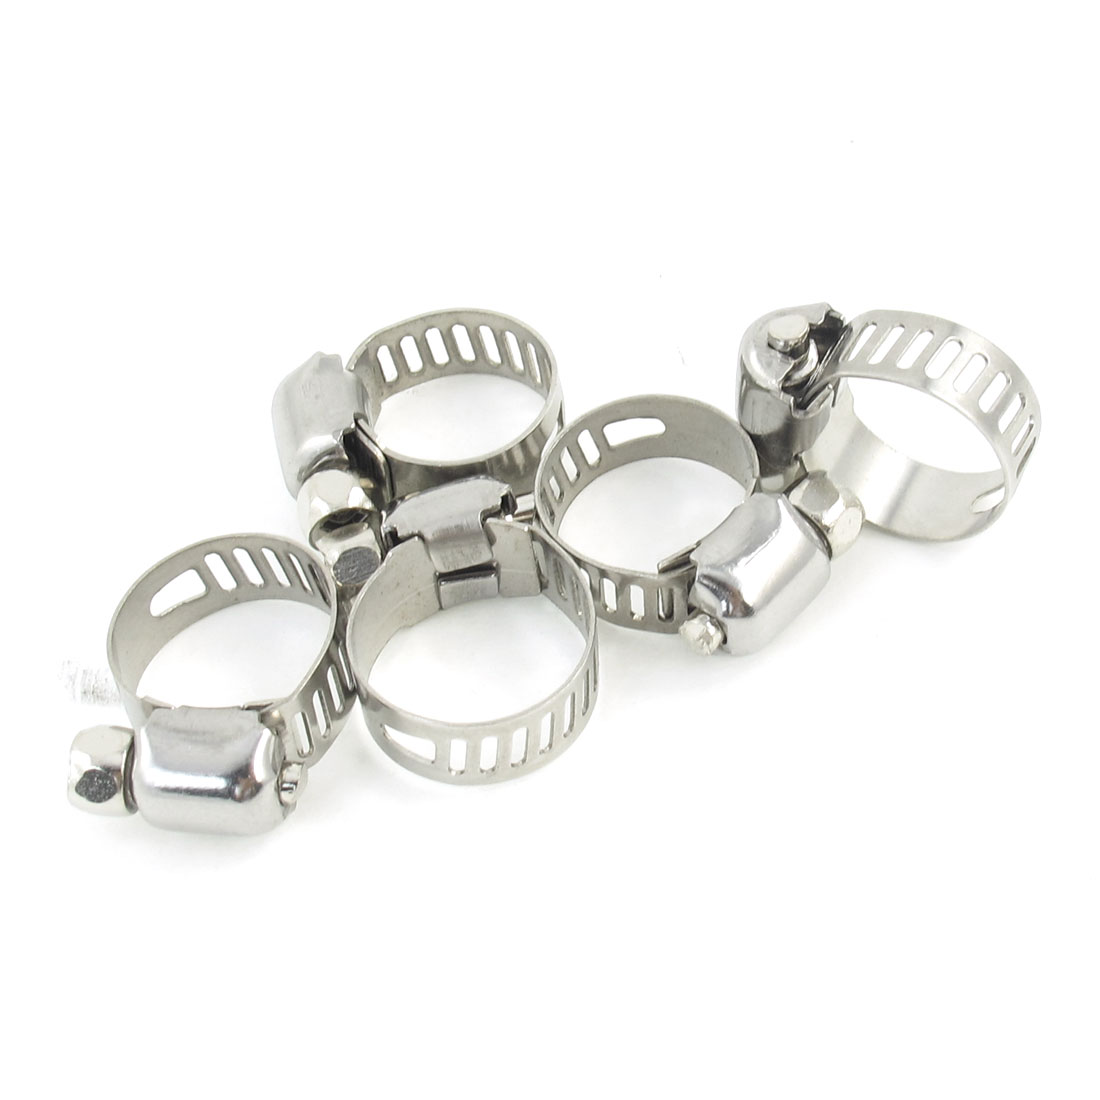 Silver Tone Metallic 9mm to 16mm Pipes Hose Clamps Clips 5 Pcs